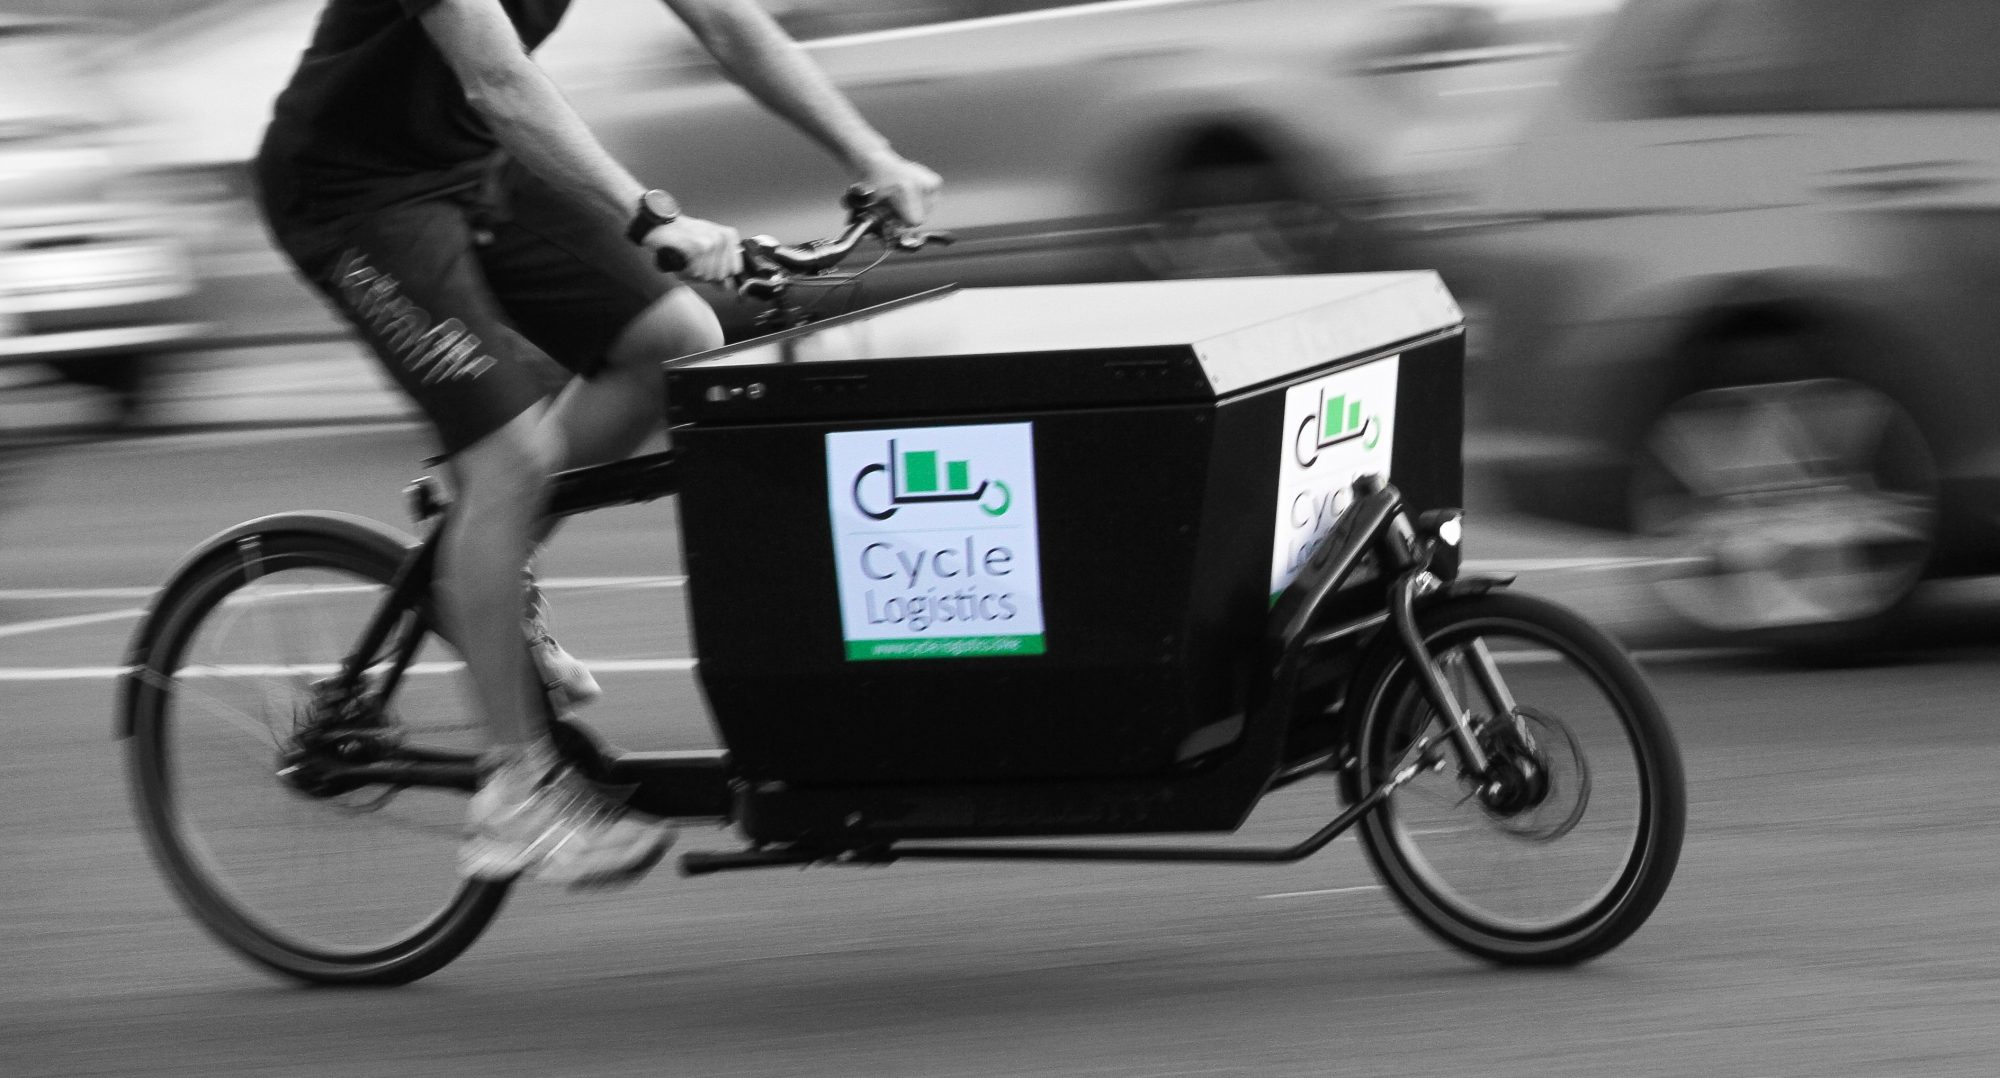 Cycle Logistics CL GmbH